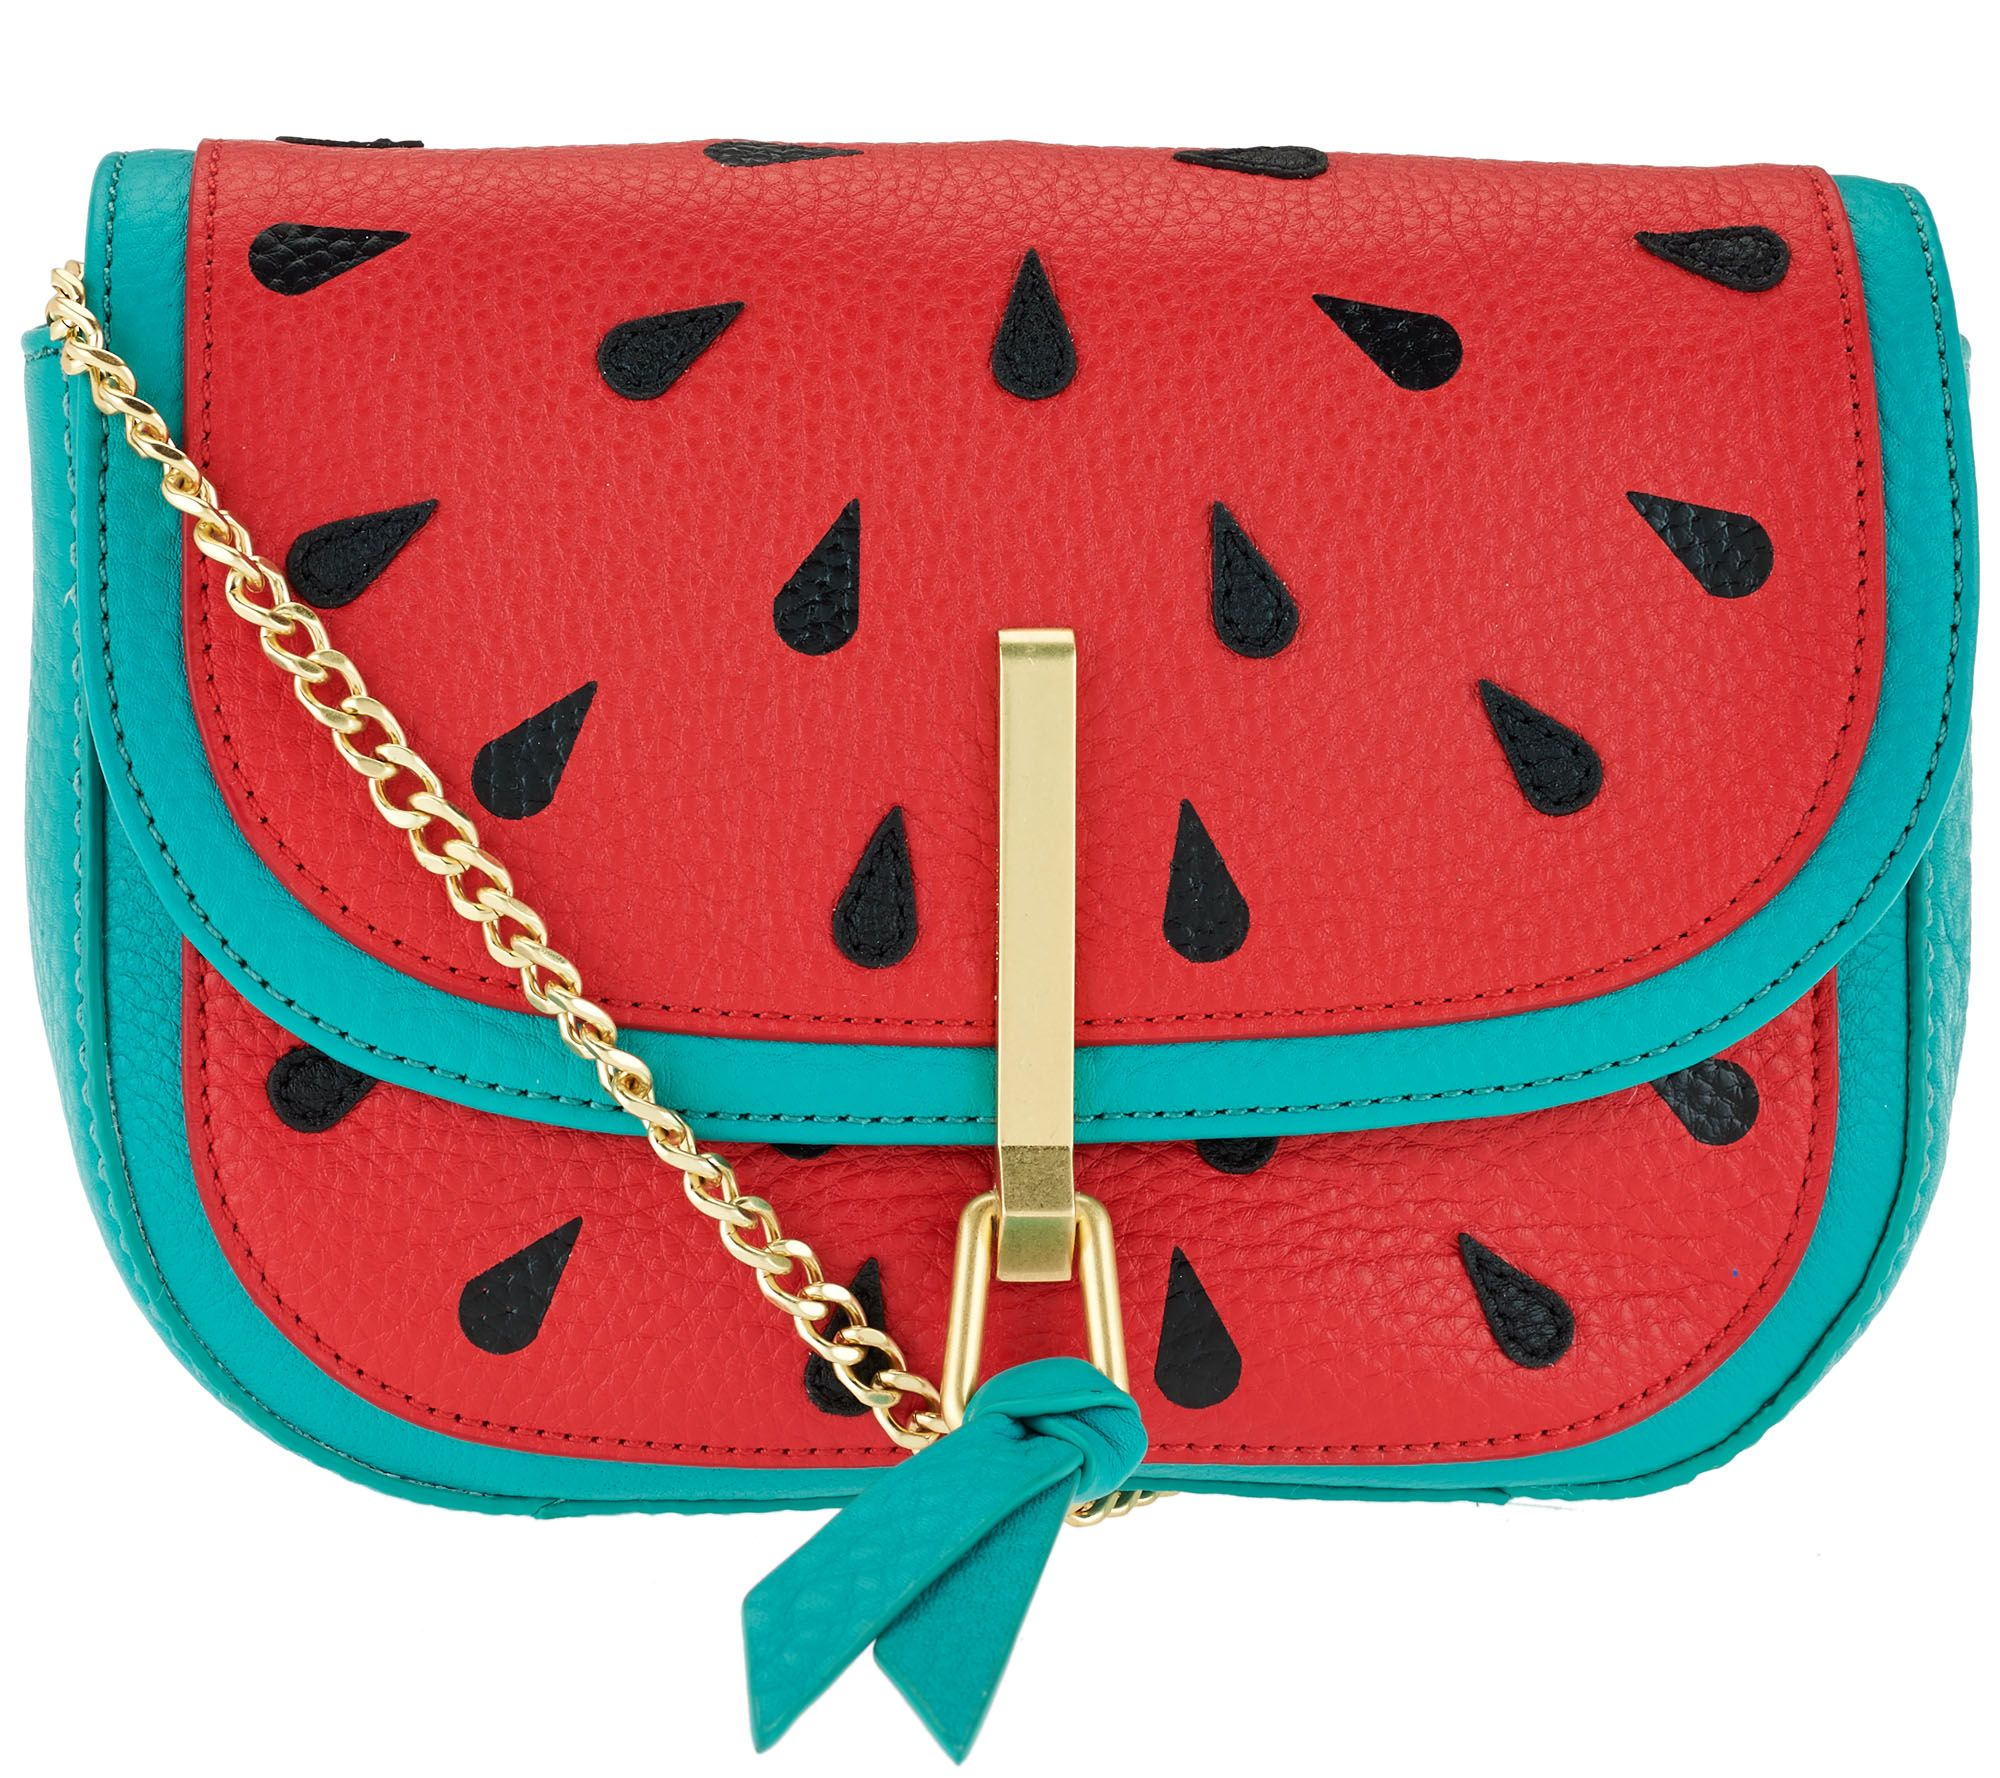 Vera Bradley Sycamore Leather Novelty Mini Saddle Bag - Page 1 — QVC.com 35973a62ea72f